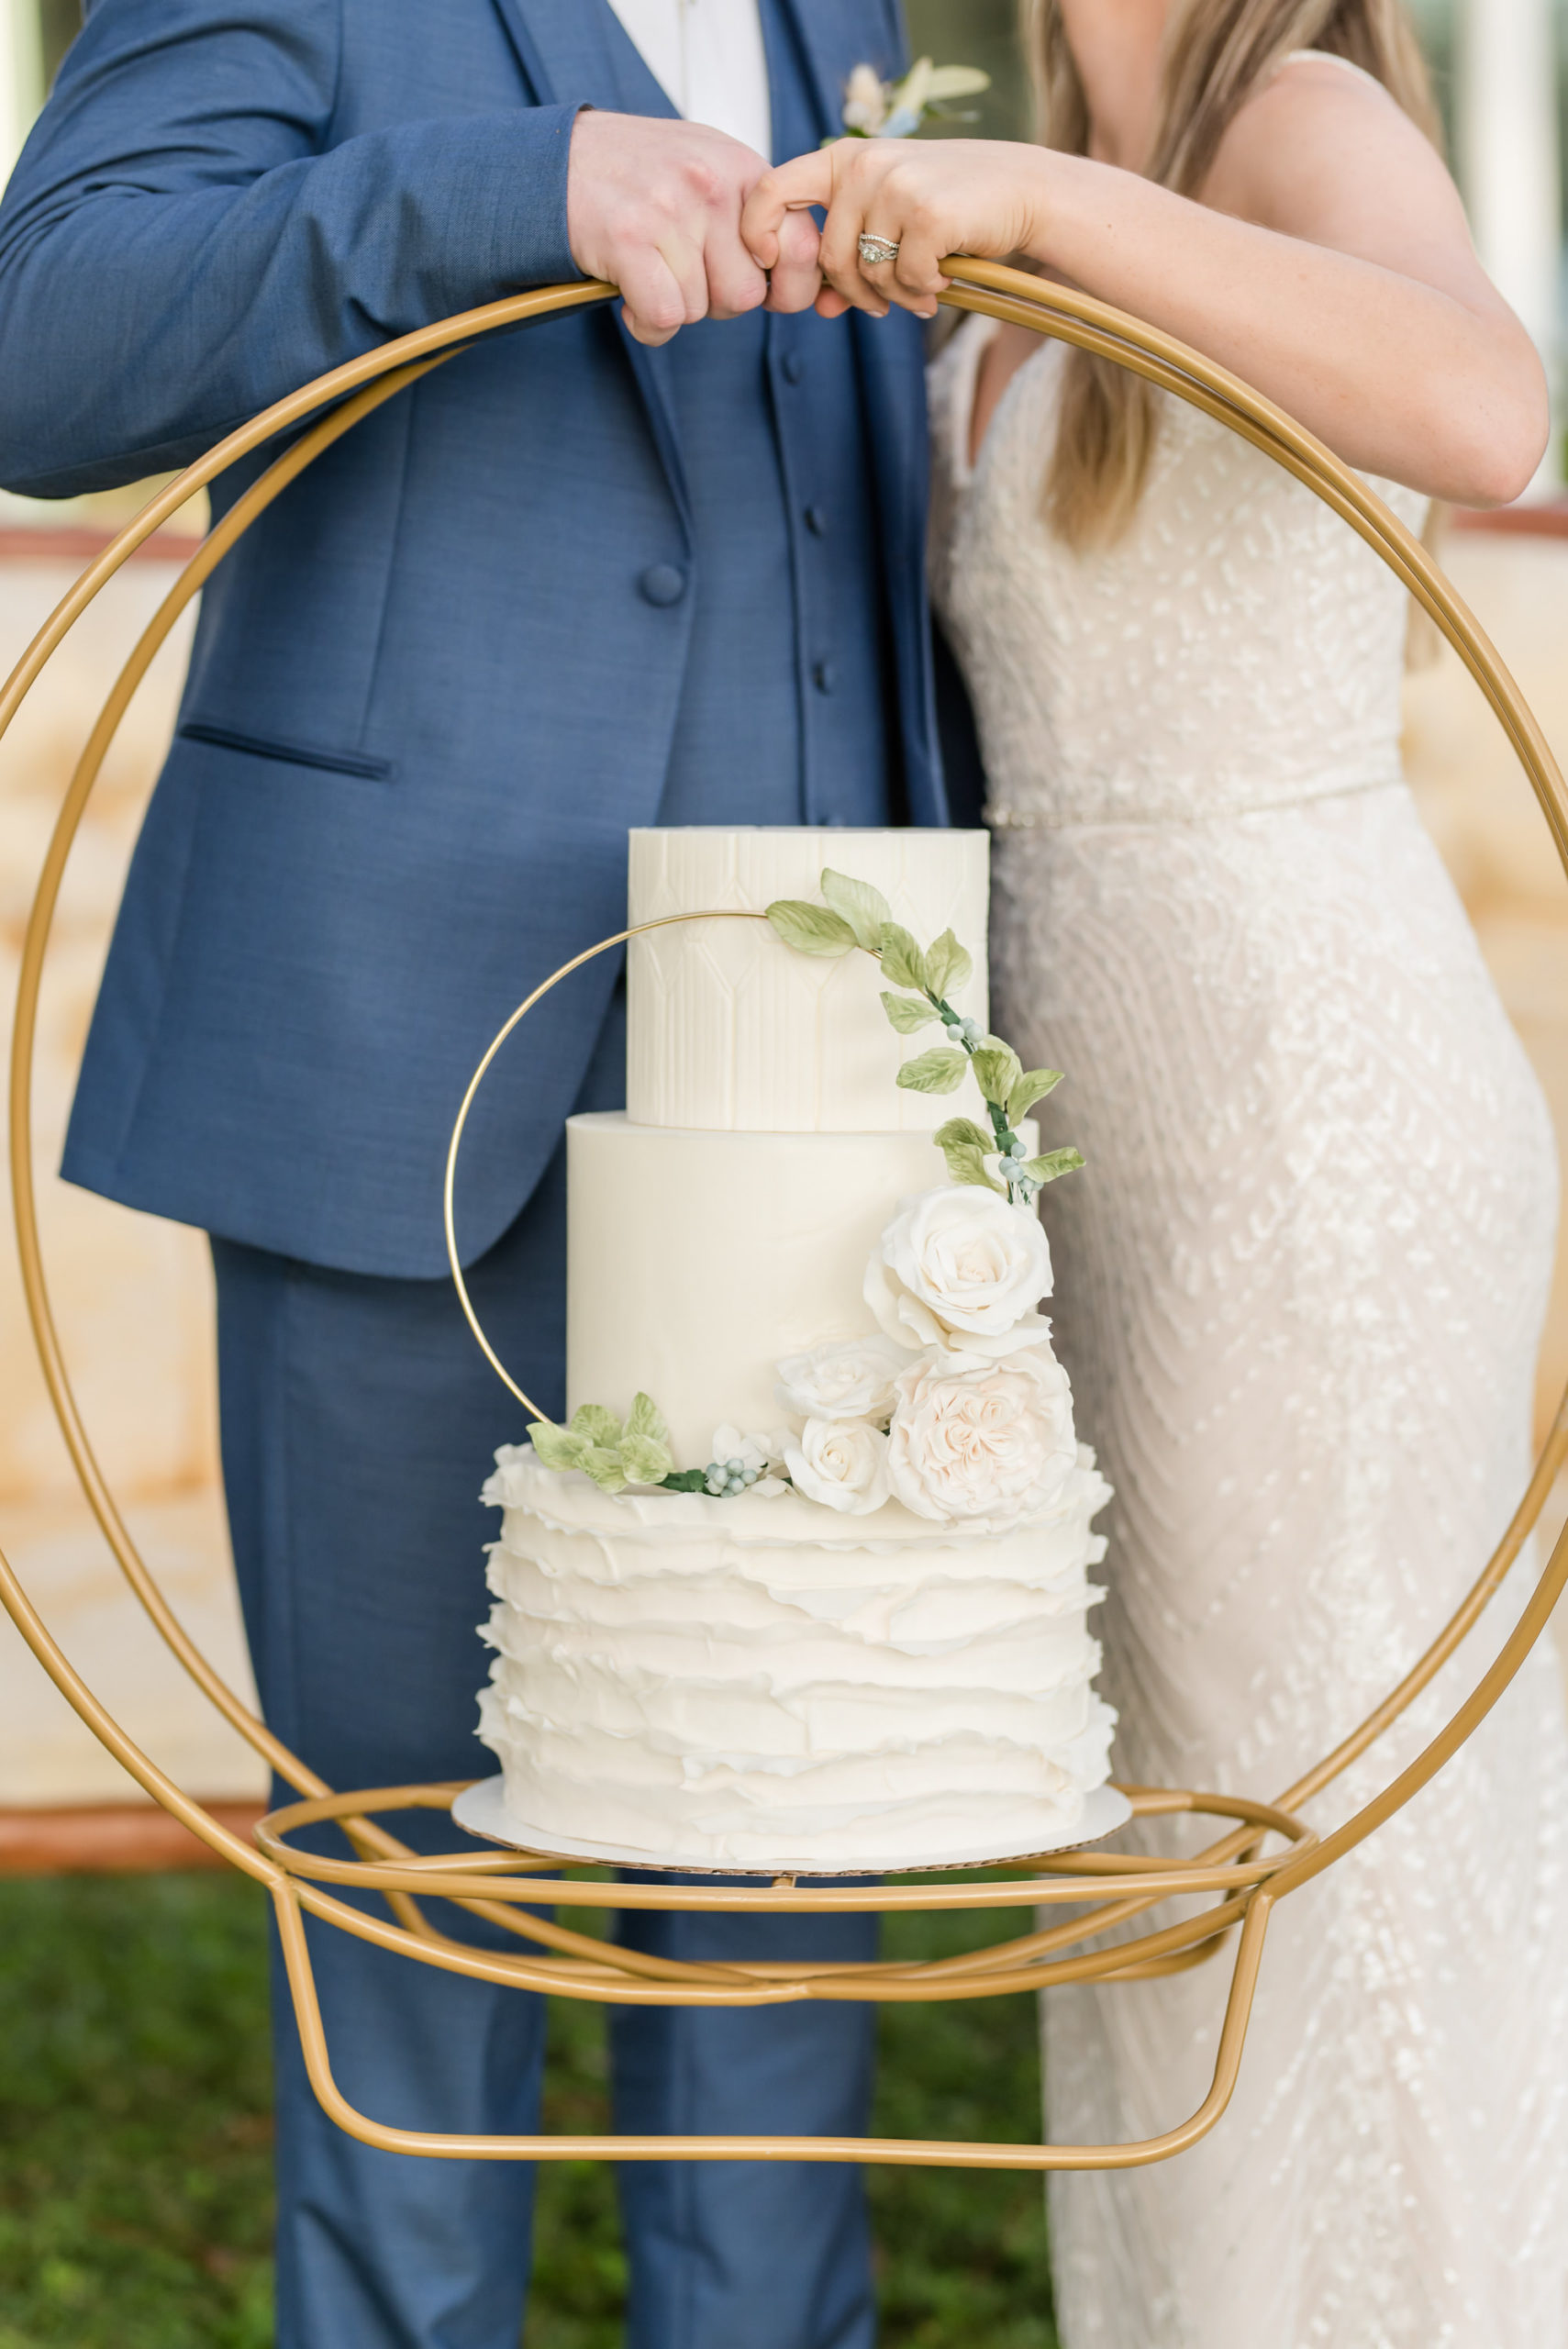 Dusty Rose Styled Wedding Shoot, Round Gold Hoop Wedding Cake Stand with Three Tier Classic Modern Wedding Cake with Ruffled Bottom Tier, Gold Circle with Green Leaves and Roses   Tampa Bay Wedding Planner Elegant Affairs by Design   Wedding Baker Tampa Bay Cake Company